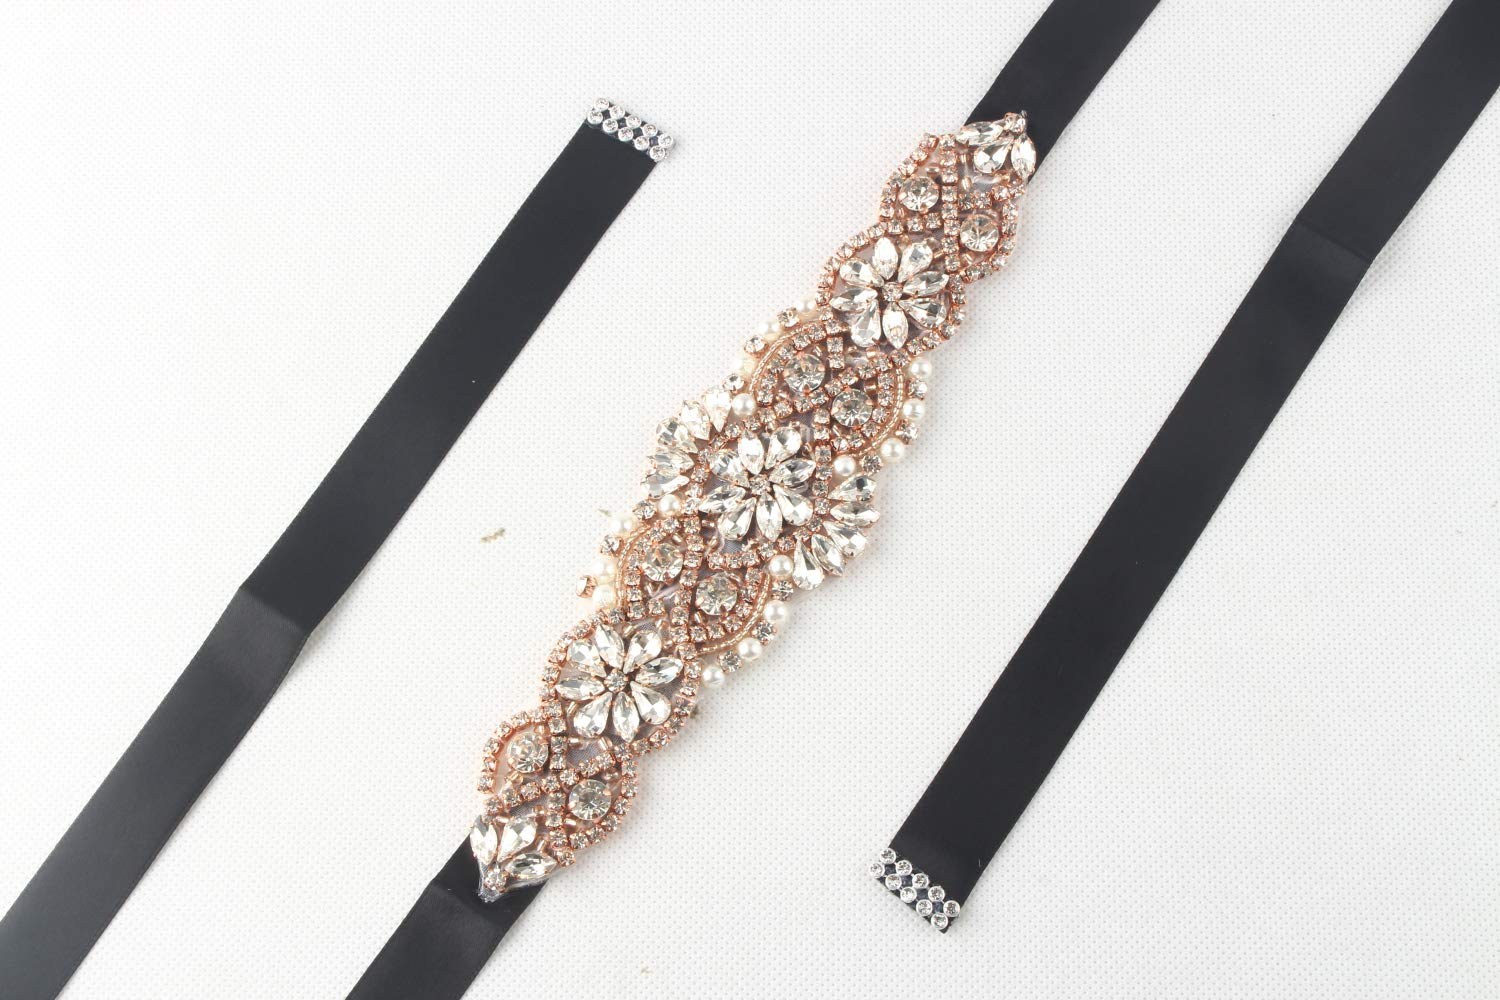 WILTEEXS Handmade Bridal Belt Wedding Belts Sashes Rhinestone Crystal Beads Belt For Bridal Gowns (Rose Gold-black)